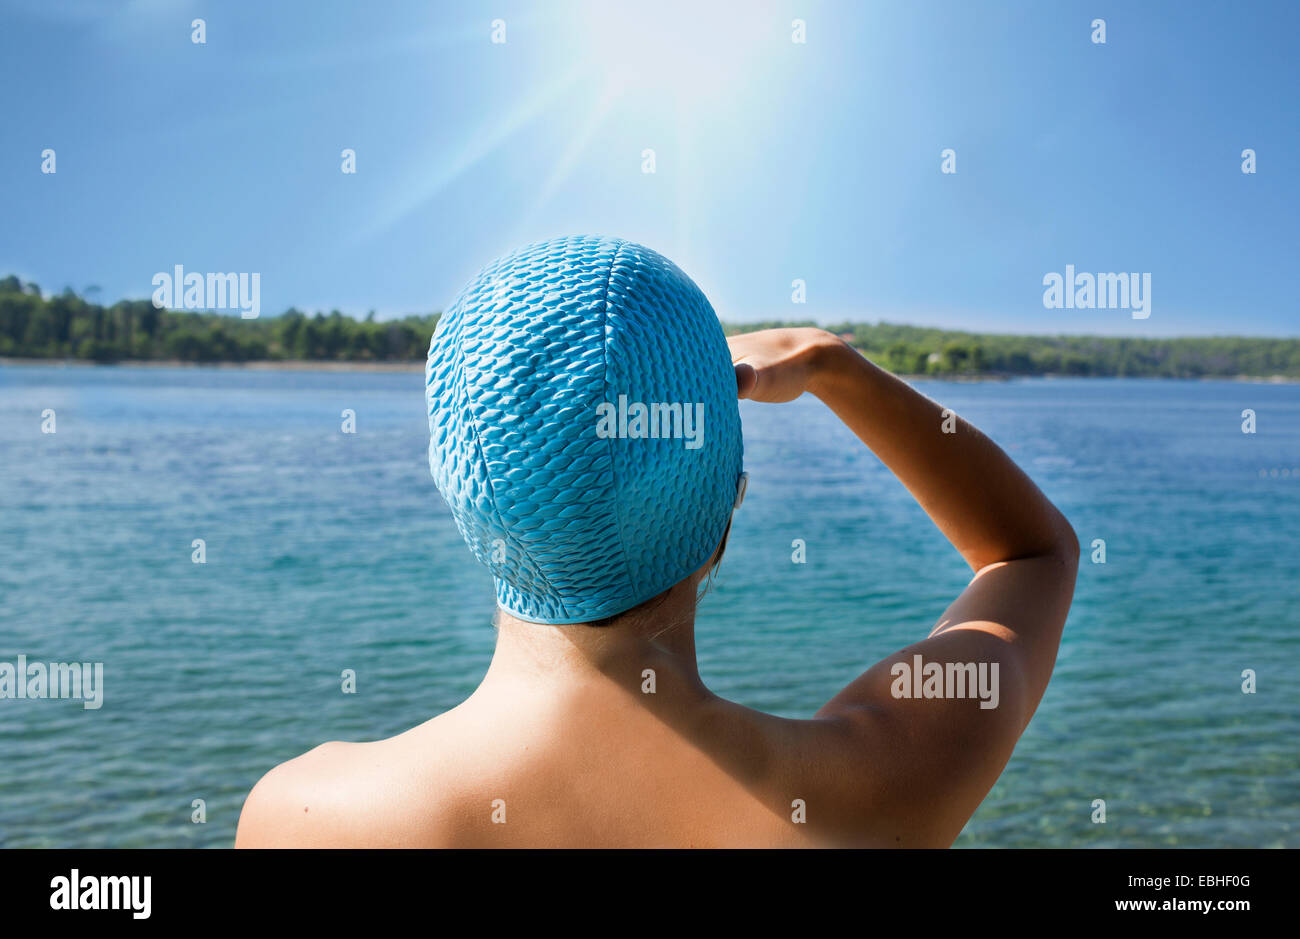 Rear view of young woman in blue swimming cap gazing out to sea, Milna, Brac, Croatia - Stock Image